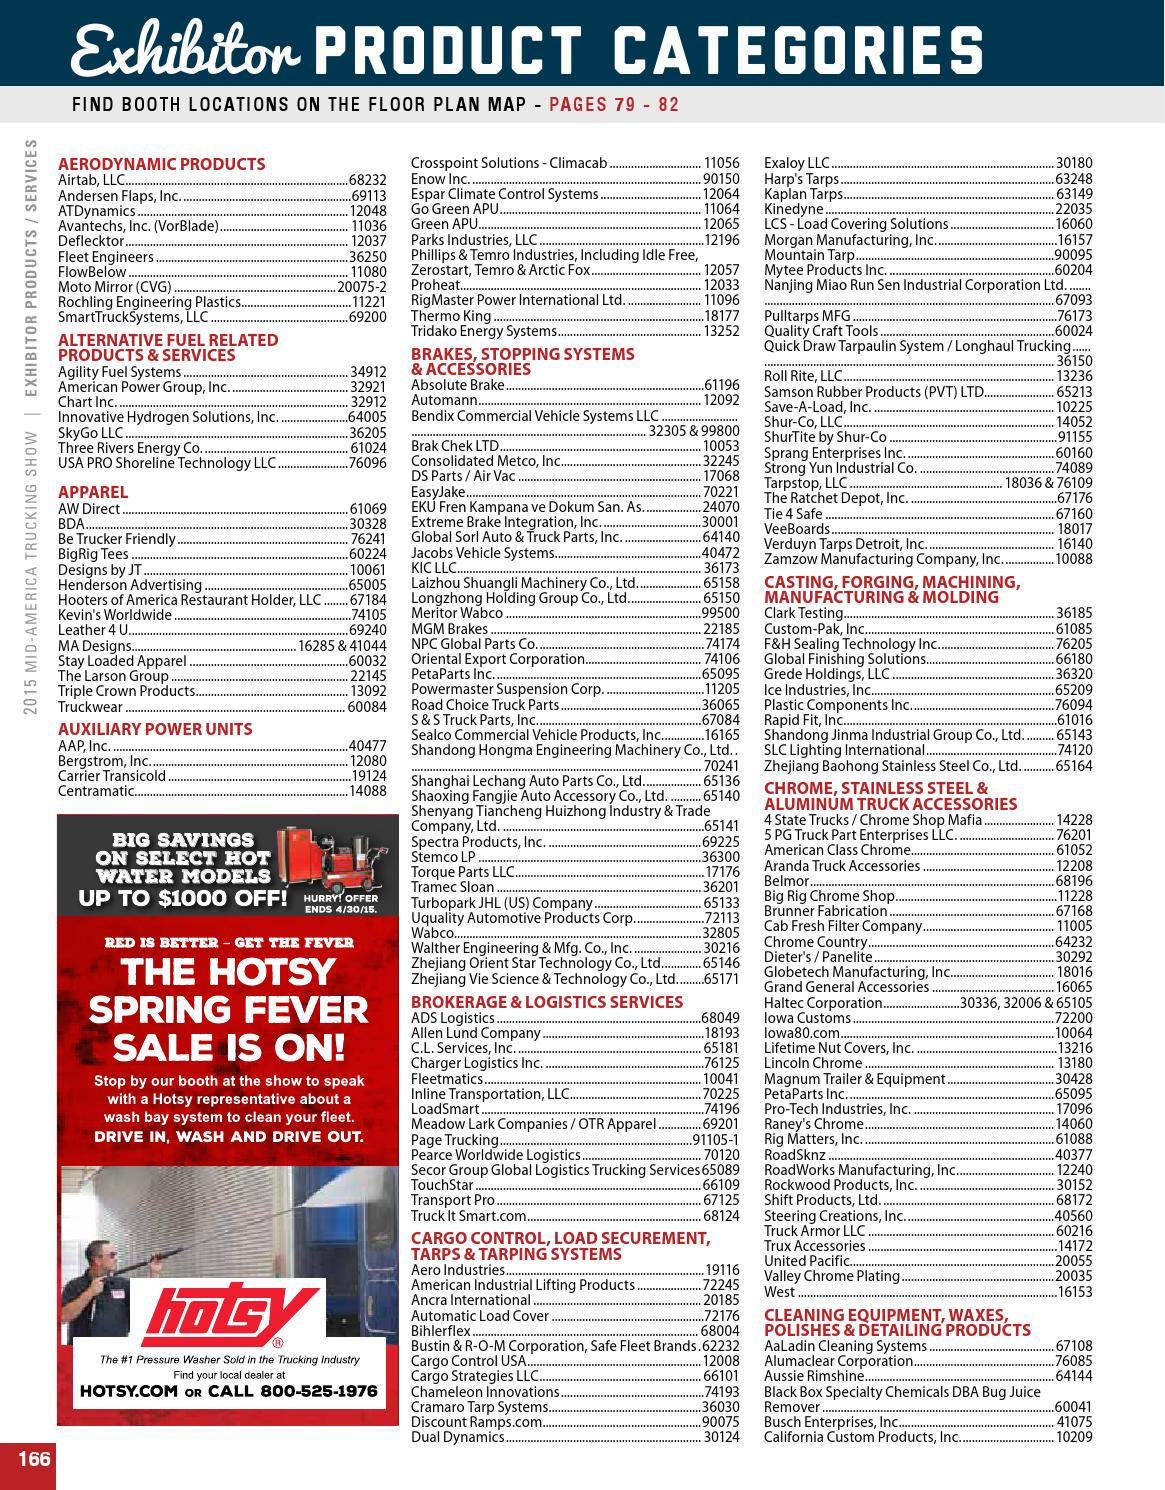 2015 Mid America Trucking Show Directory Buyer S By Mid America Trucking Show Issuu A wide variety of aw direct options are available to you, such as material, use, and structure. issuu